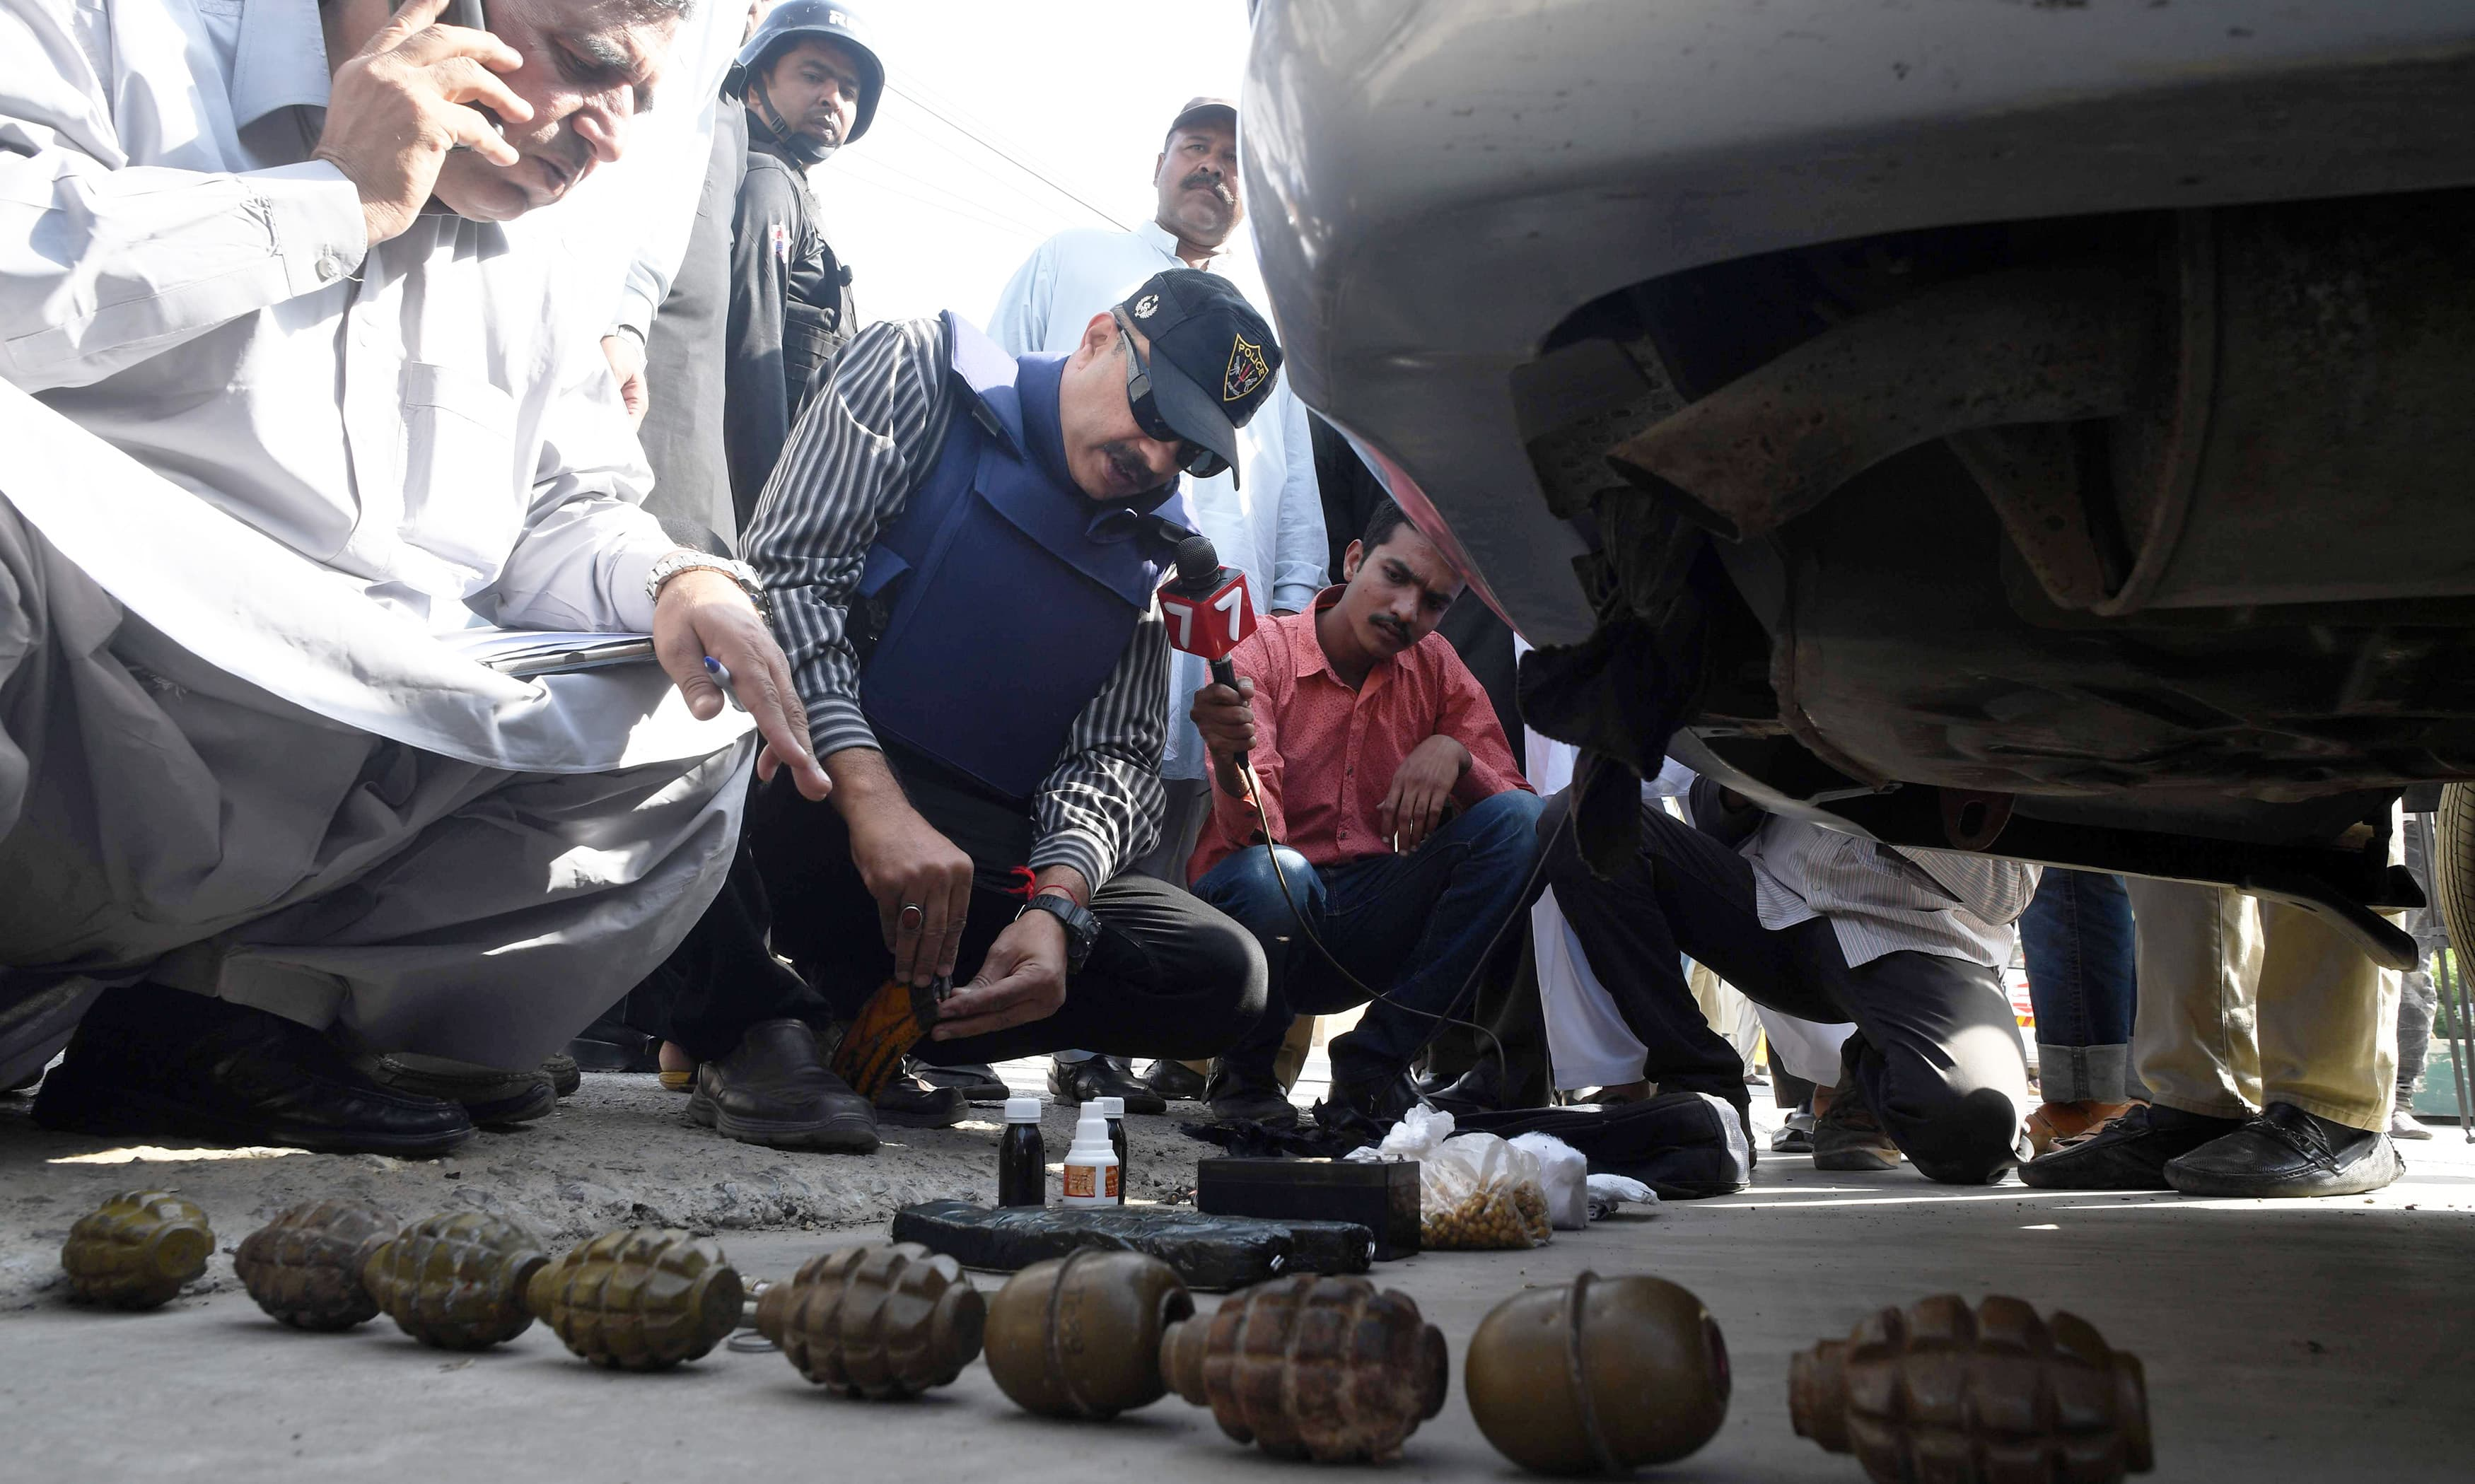 Investigators look at the belongings of attackers including grenades outside the Chinese consulate after an attack in Karachi. —AFP